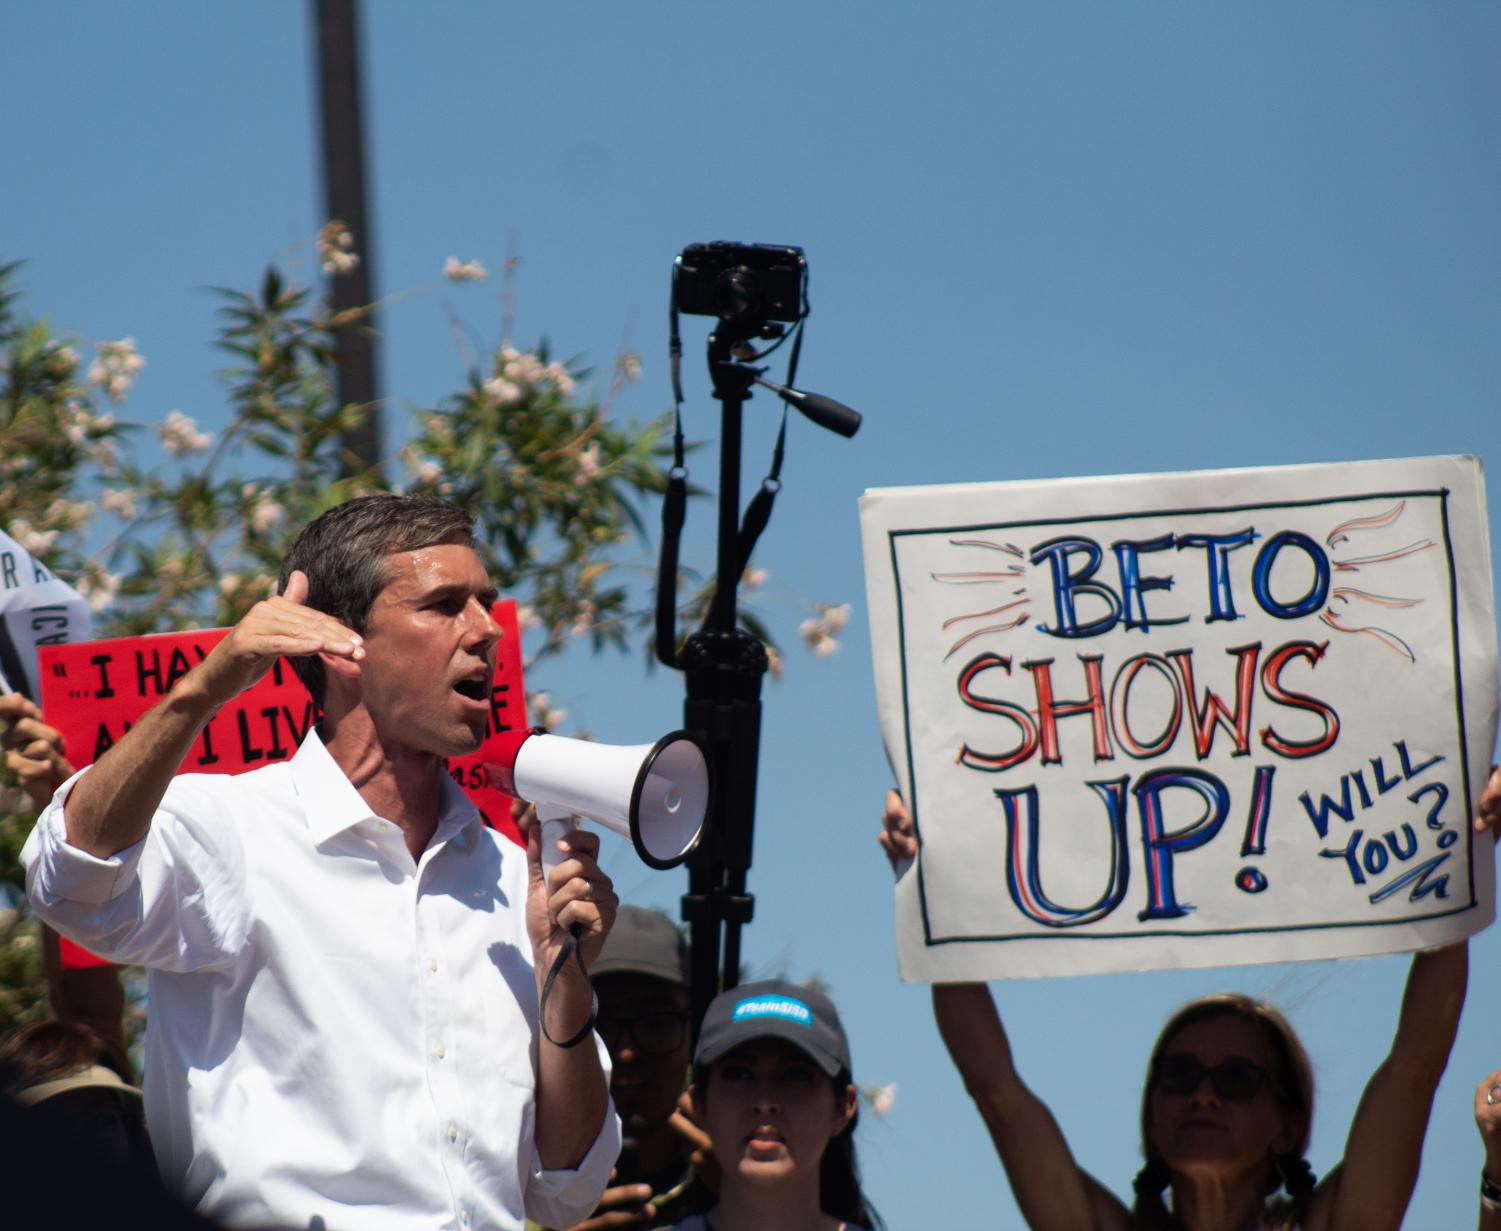 Democratic presidential candidate Beto O'Rourke advocates for immigrants at the Clint Border Patrol Station on Sunday June 30, 2019.